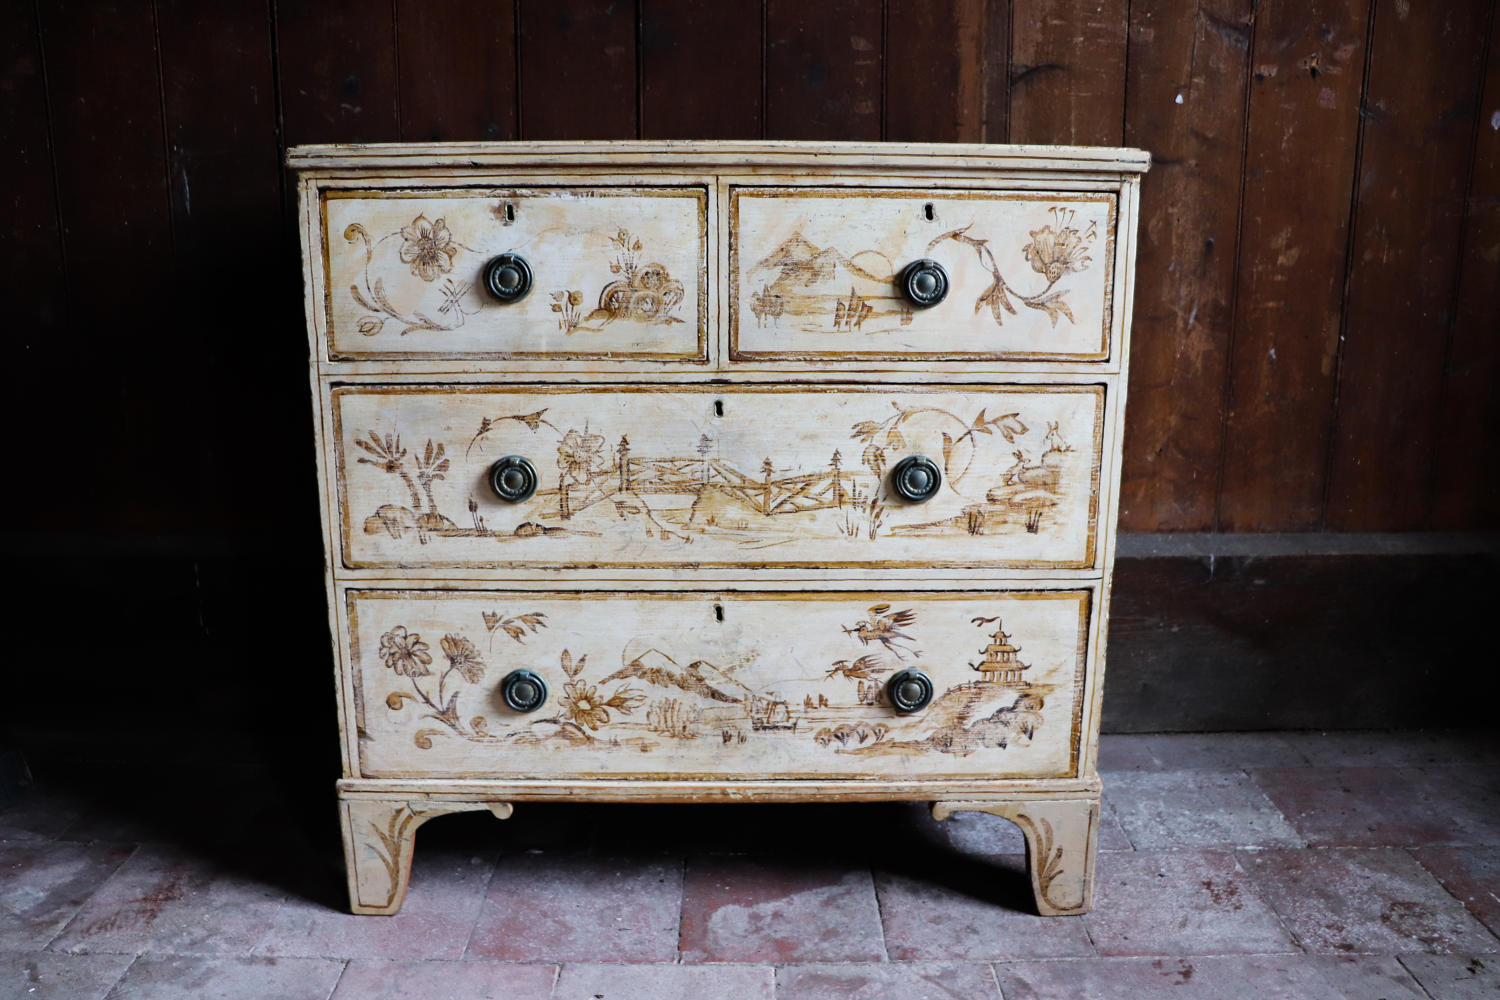 19th century chinoiserie chest of drawers